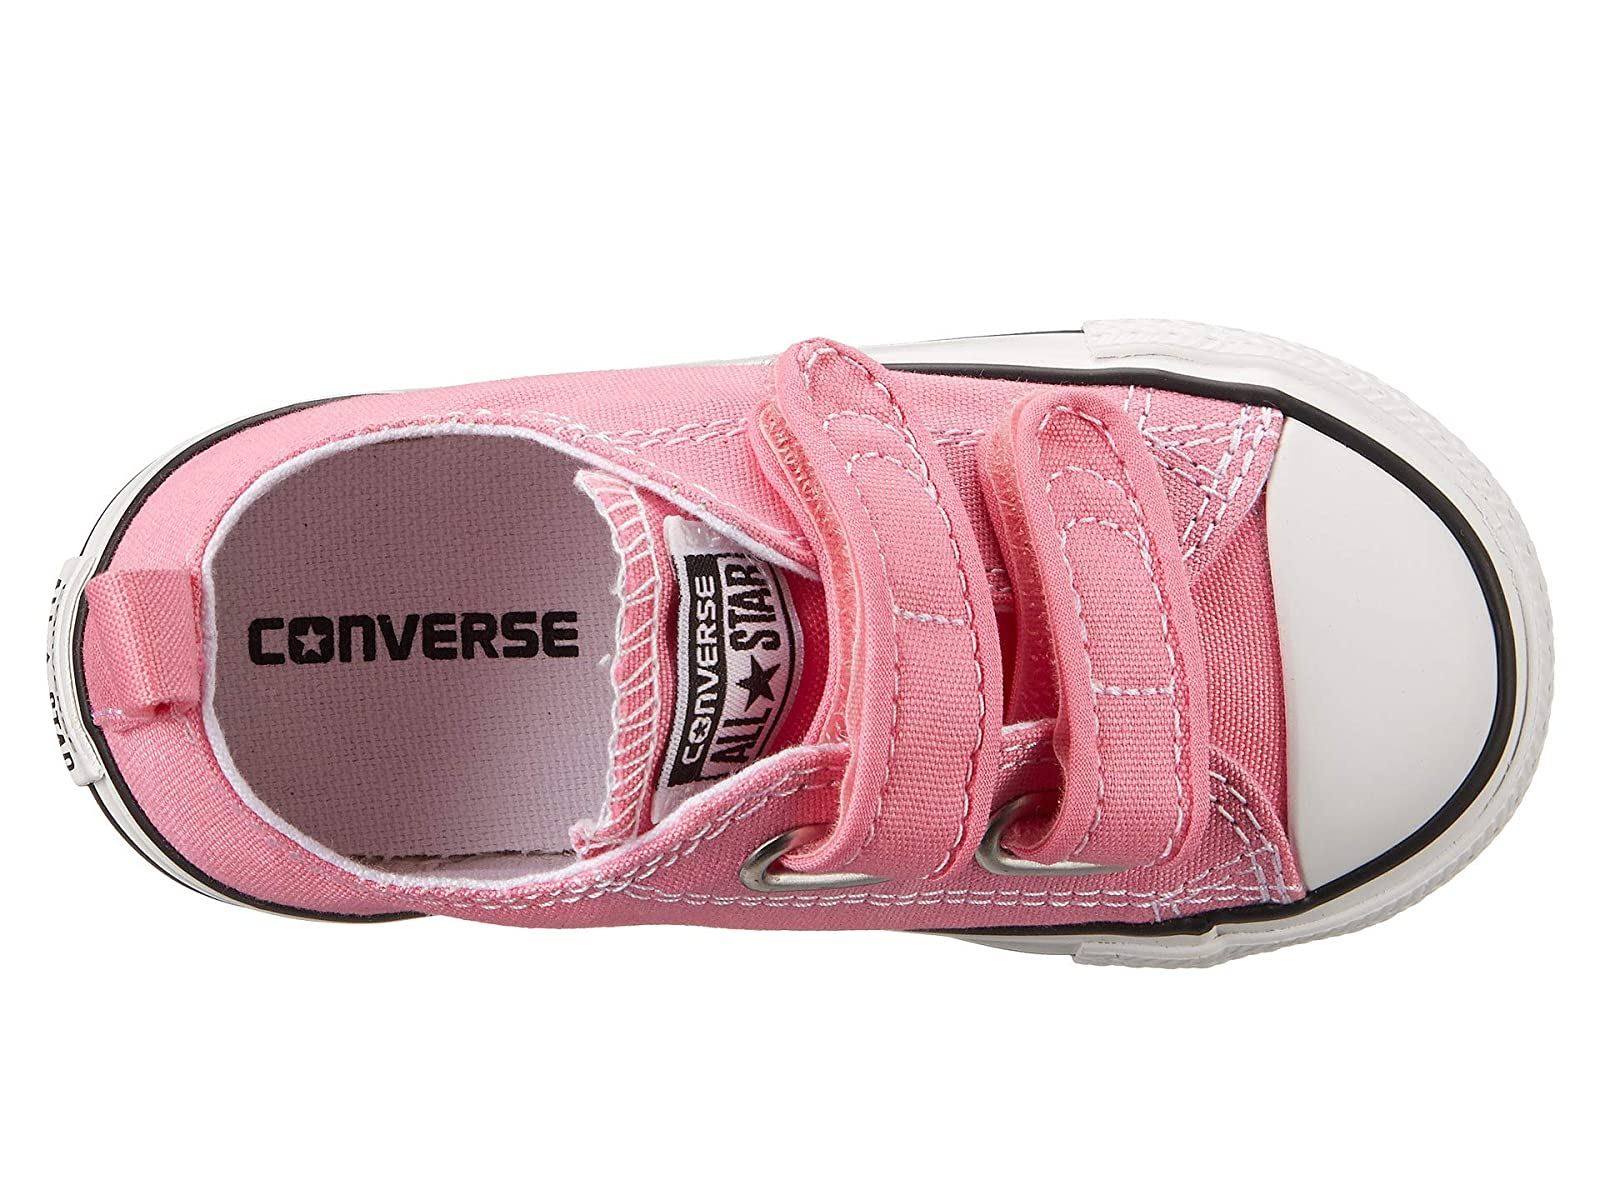 b2ee2303d8a5b Details about Girl's Shoes Converse Kids Chuck Taylor 2V Ox (Infant/Toddler)